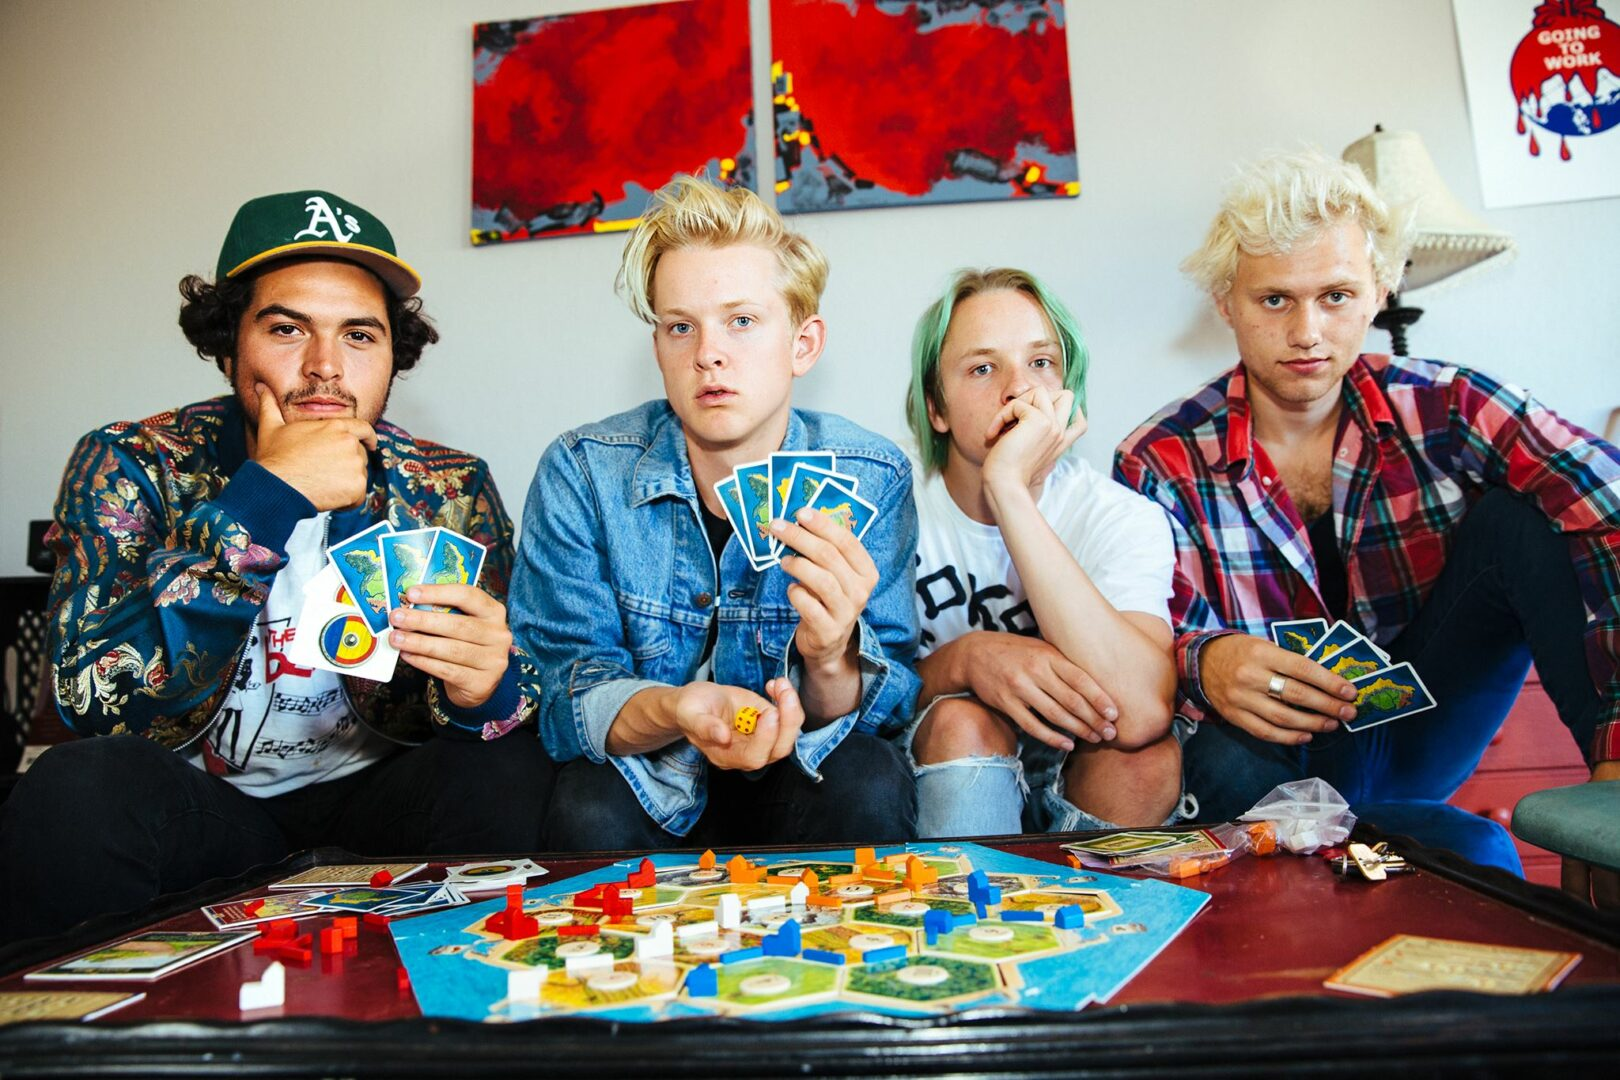 SWMRS Announce North American Tour 2016